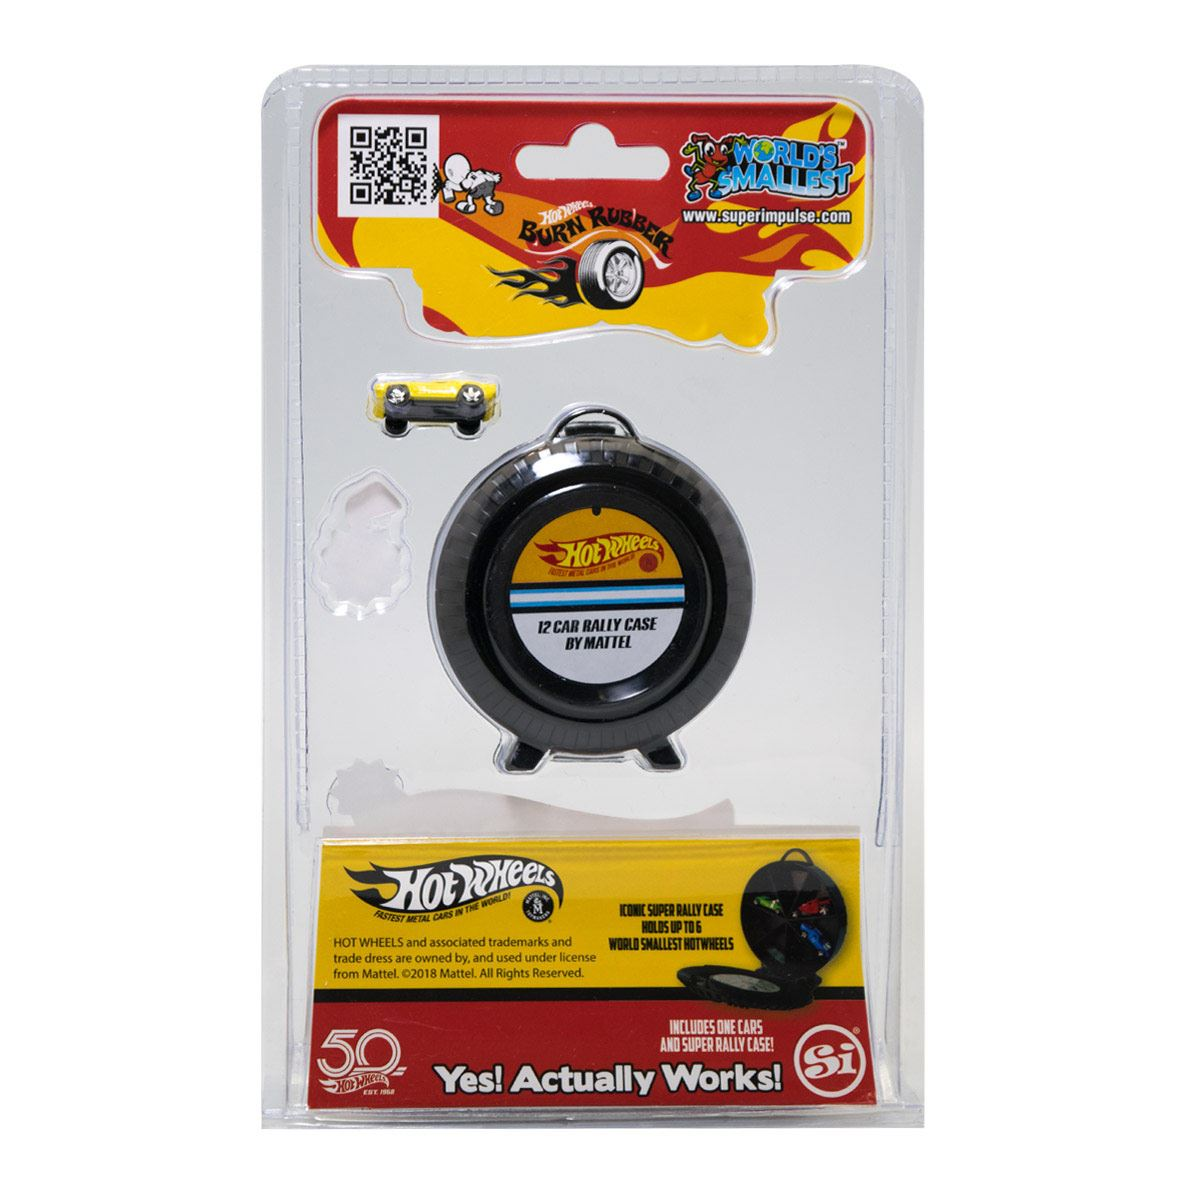 Mini World Super Rally Case Hot Wheel